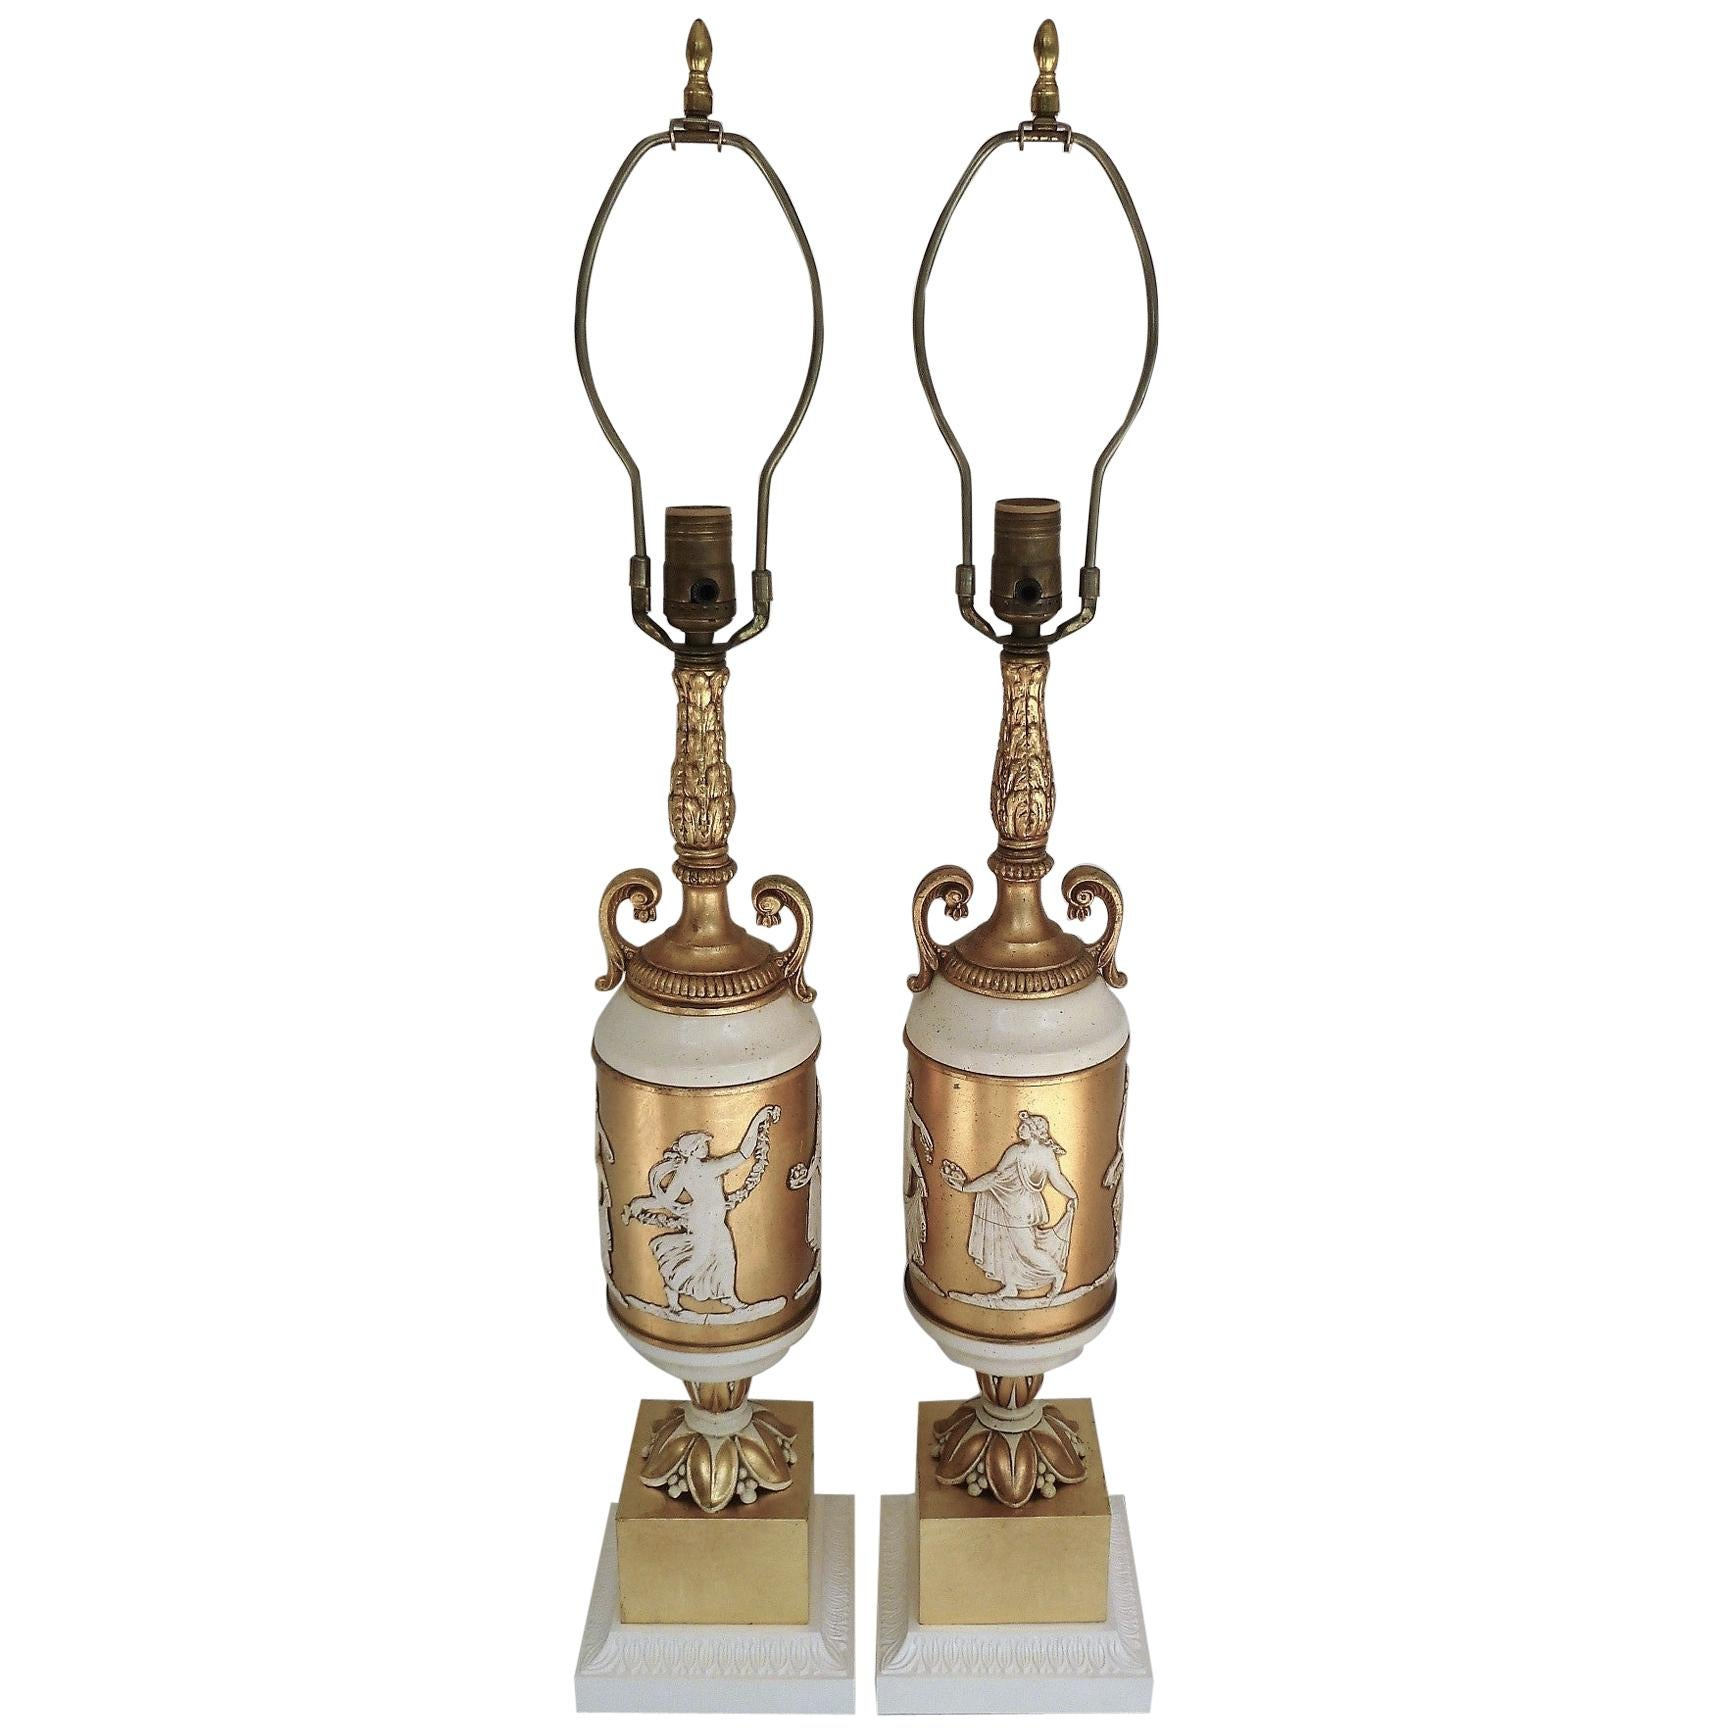 Pair of Classical Gilt and Enamel Urn Form Table Lamps